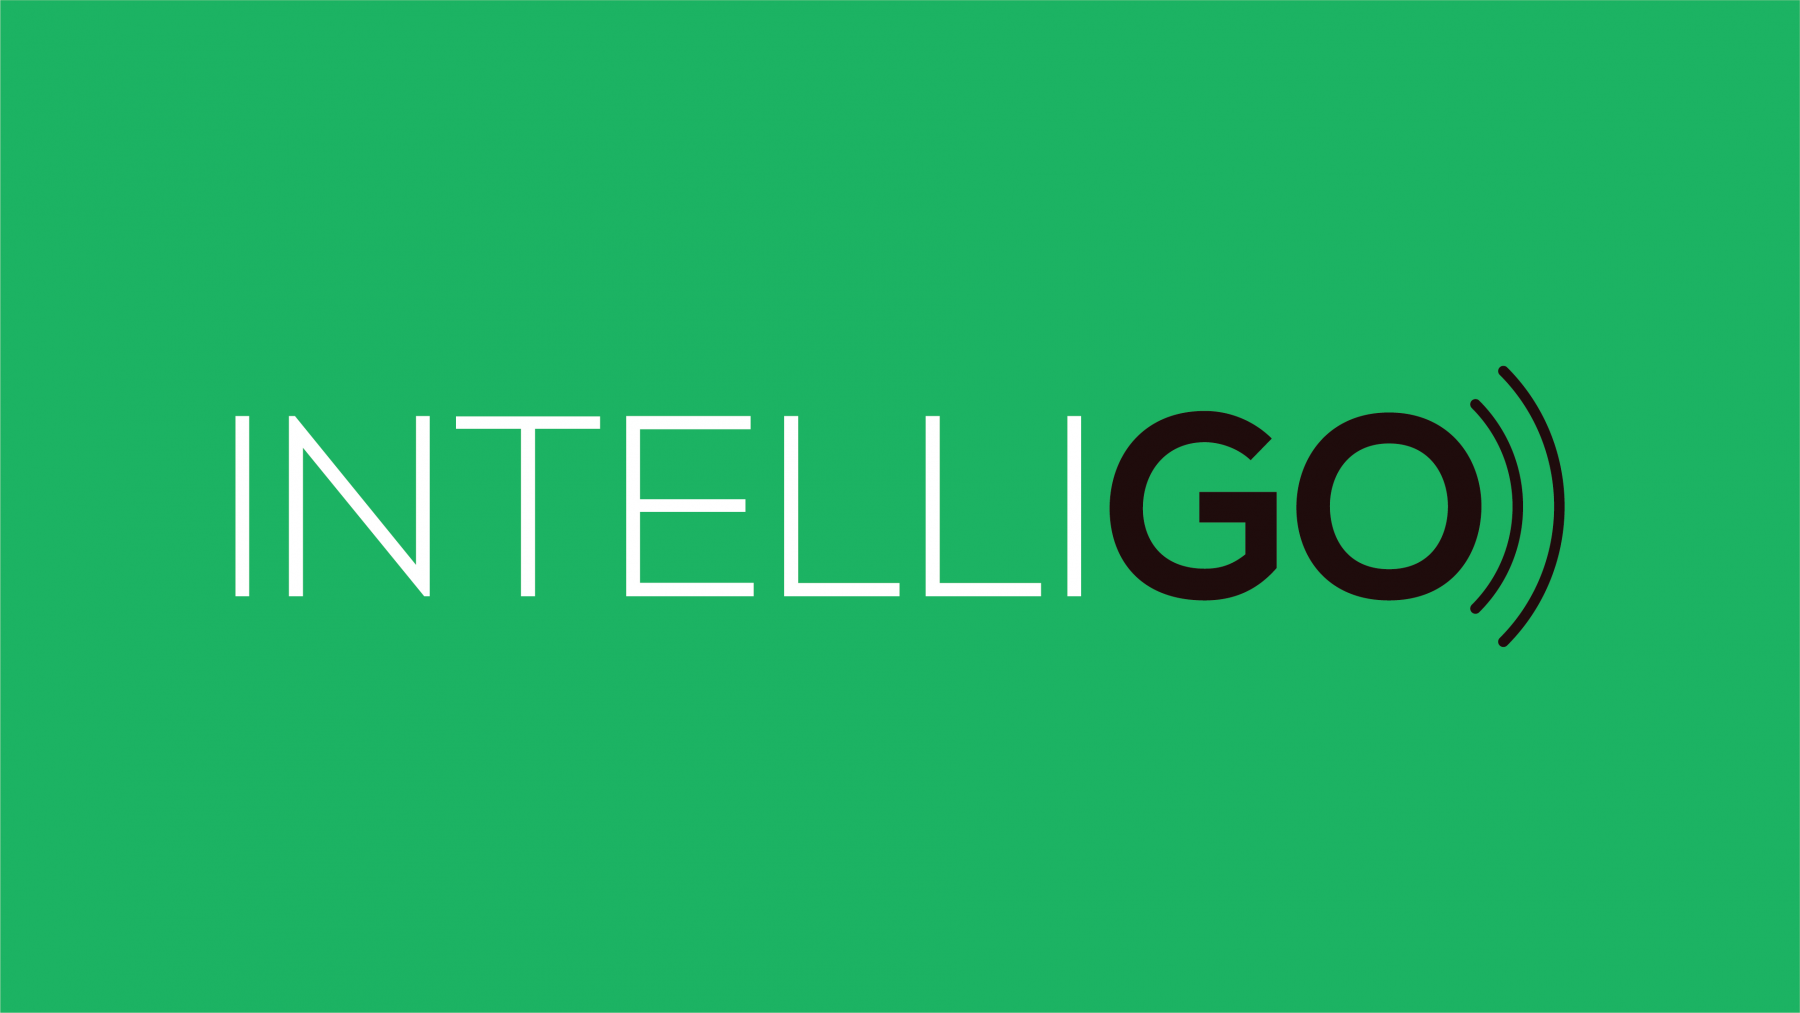 Intelligo Logo